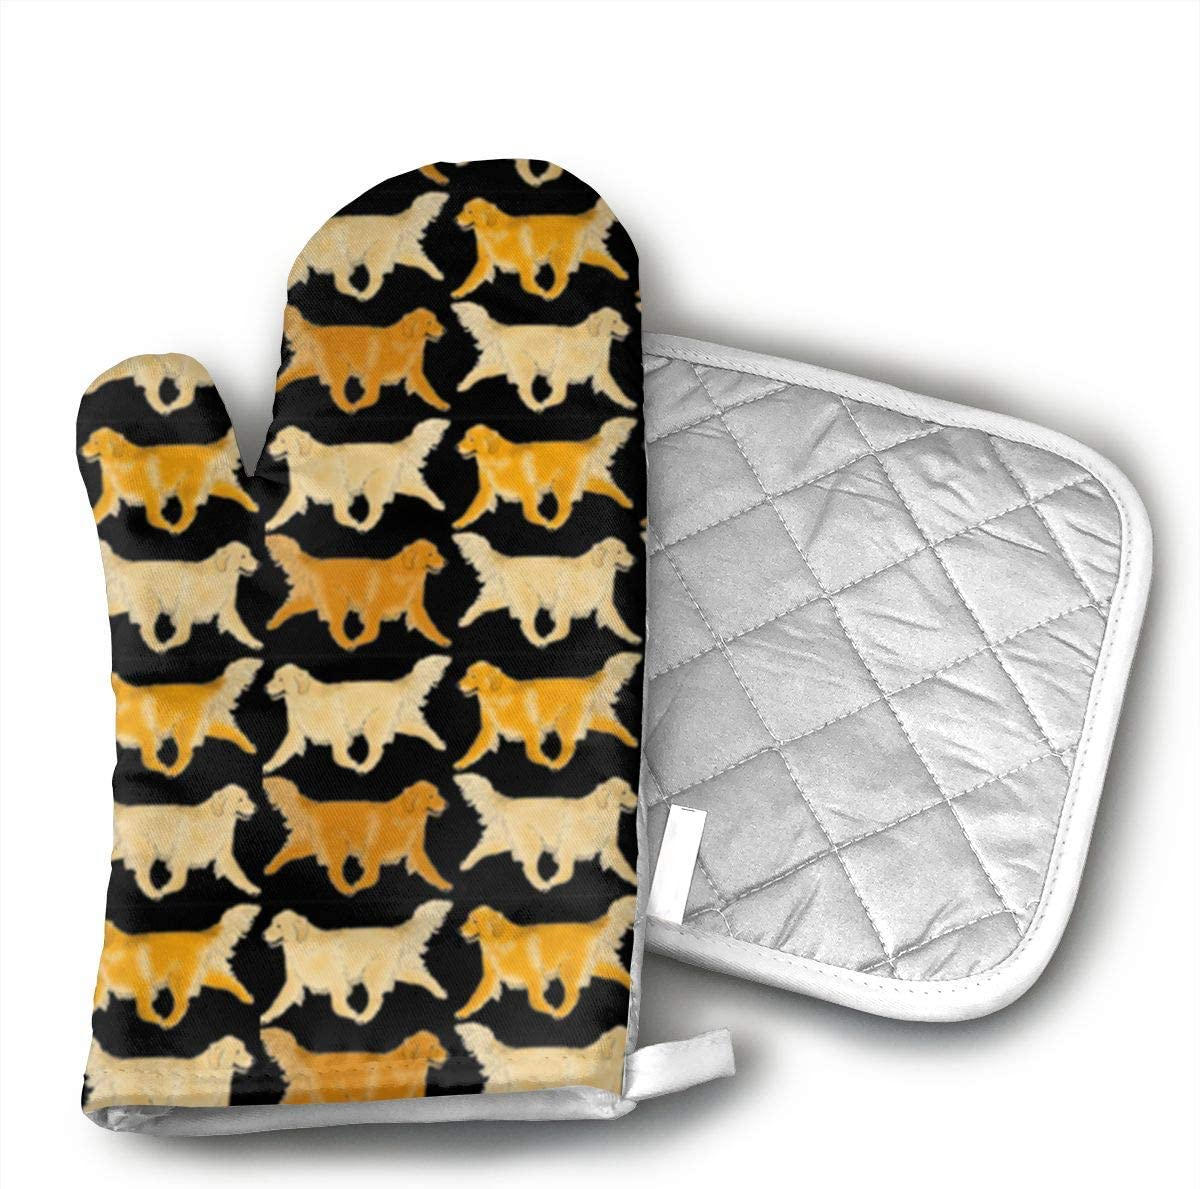 KEIOO Trotting Golden Retriever Oven Mitts and Potholders Heat Resistant Set of 2 Kitchen Set Non-Slip Grip Oven Gloves BBQ Cooking Baking Grilling